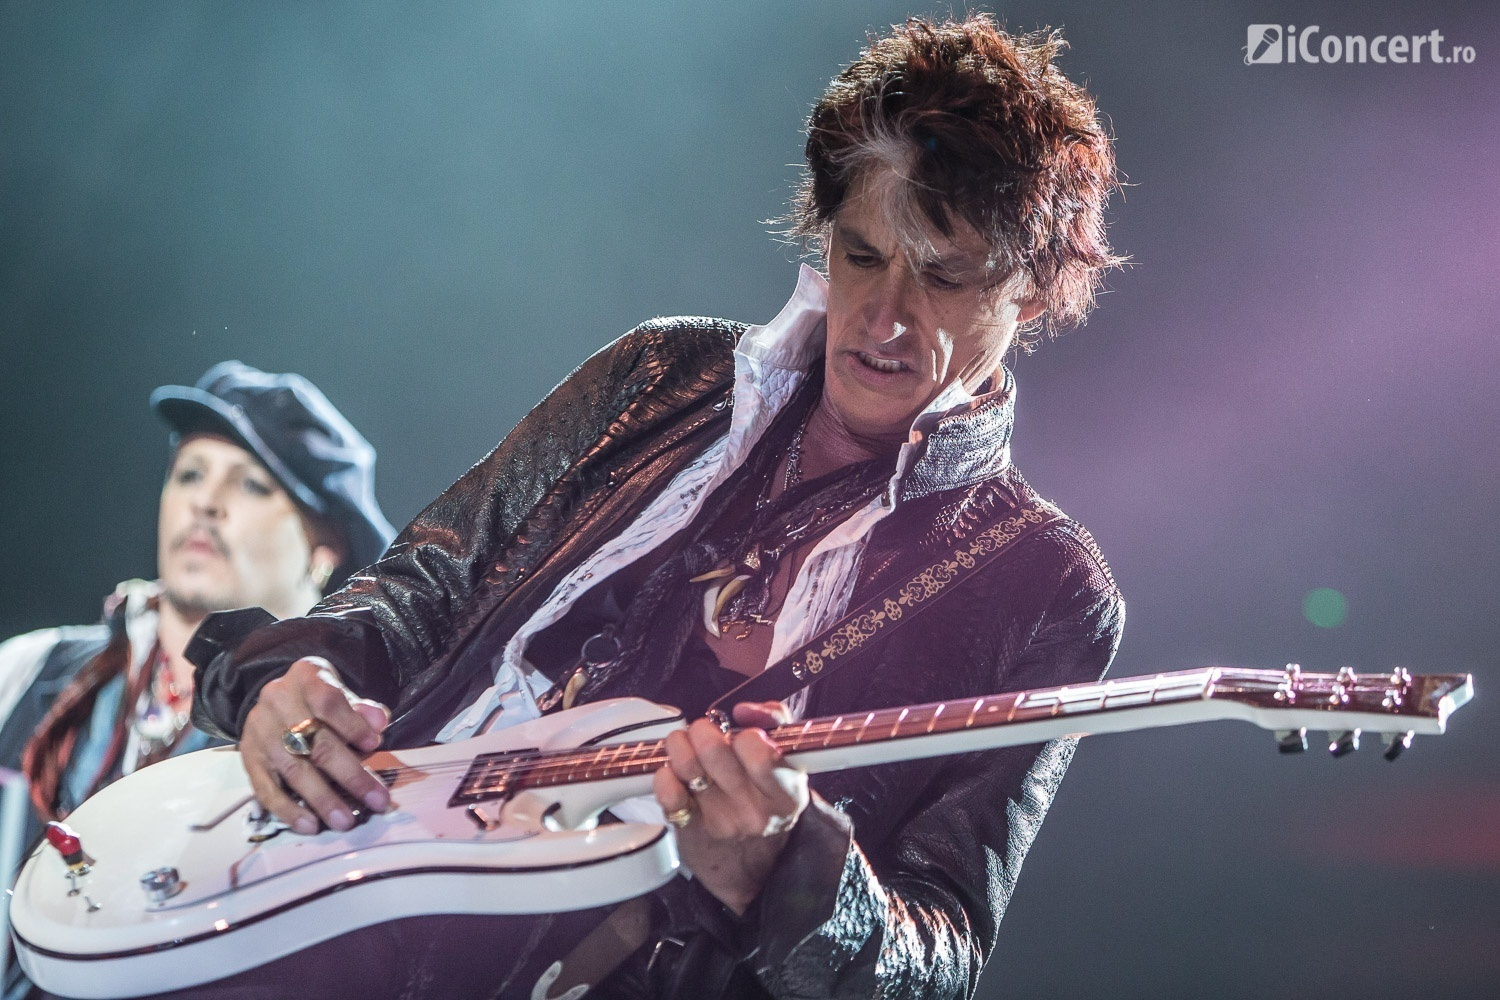 Joe Perry - The Hollywood Vampires în concert la Bucureşti - Foto: Paul Voicu / iConcert.ro